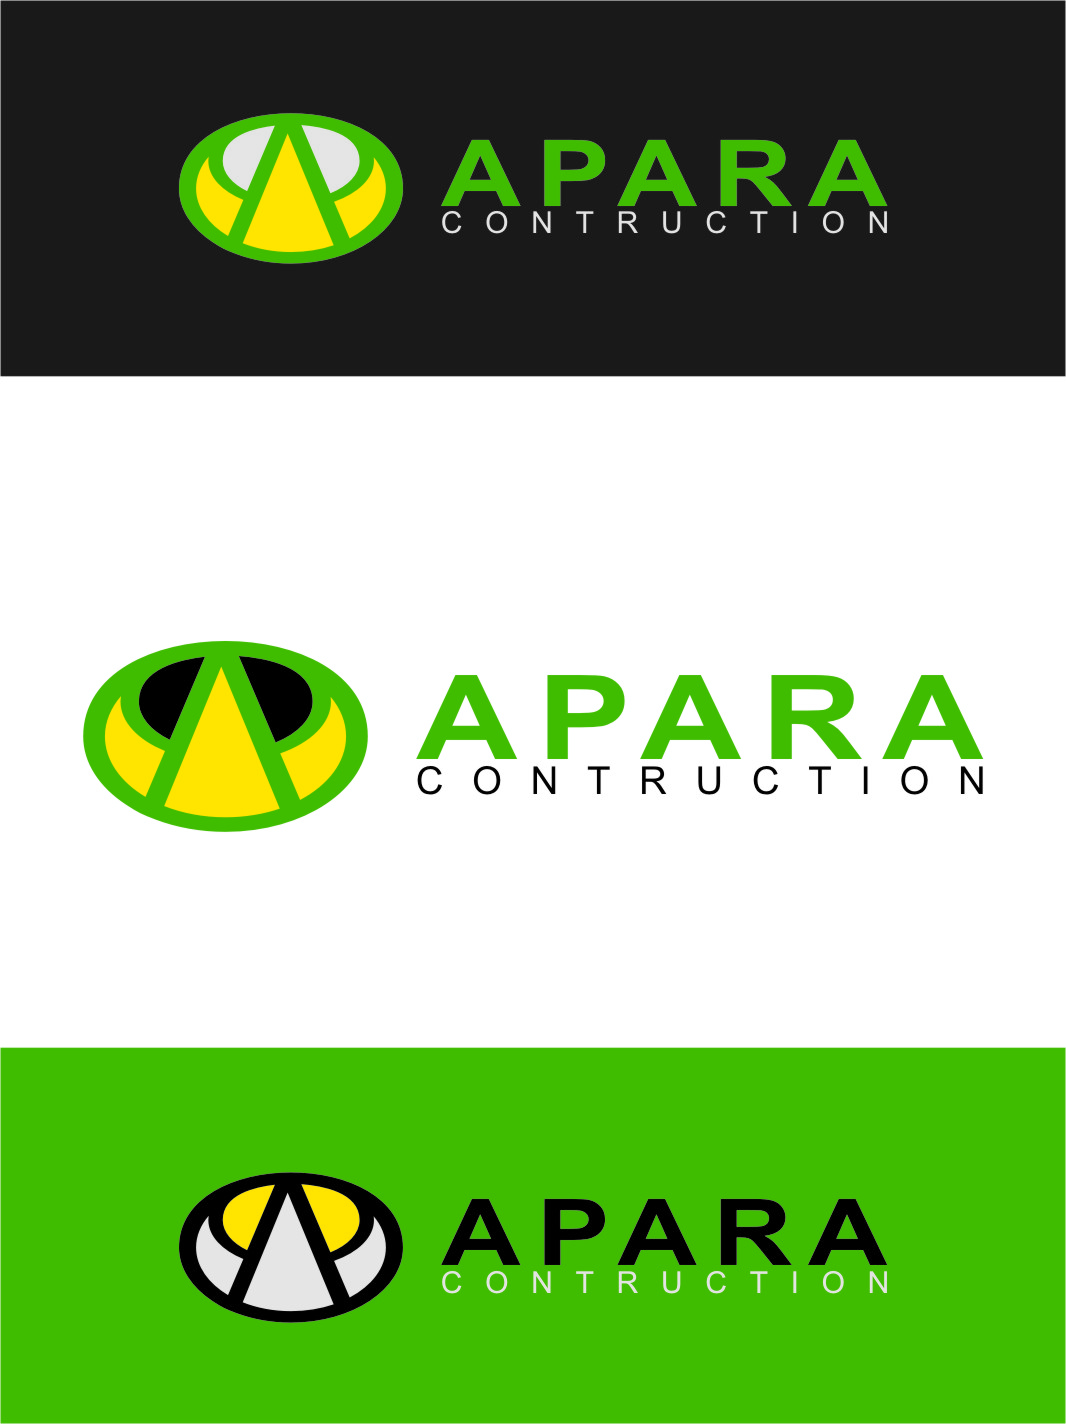 Logo Design by RasYa Muhammad Athaya - Entry No. 35 in the Logo Design Contest Apara Construction Logo Design.